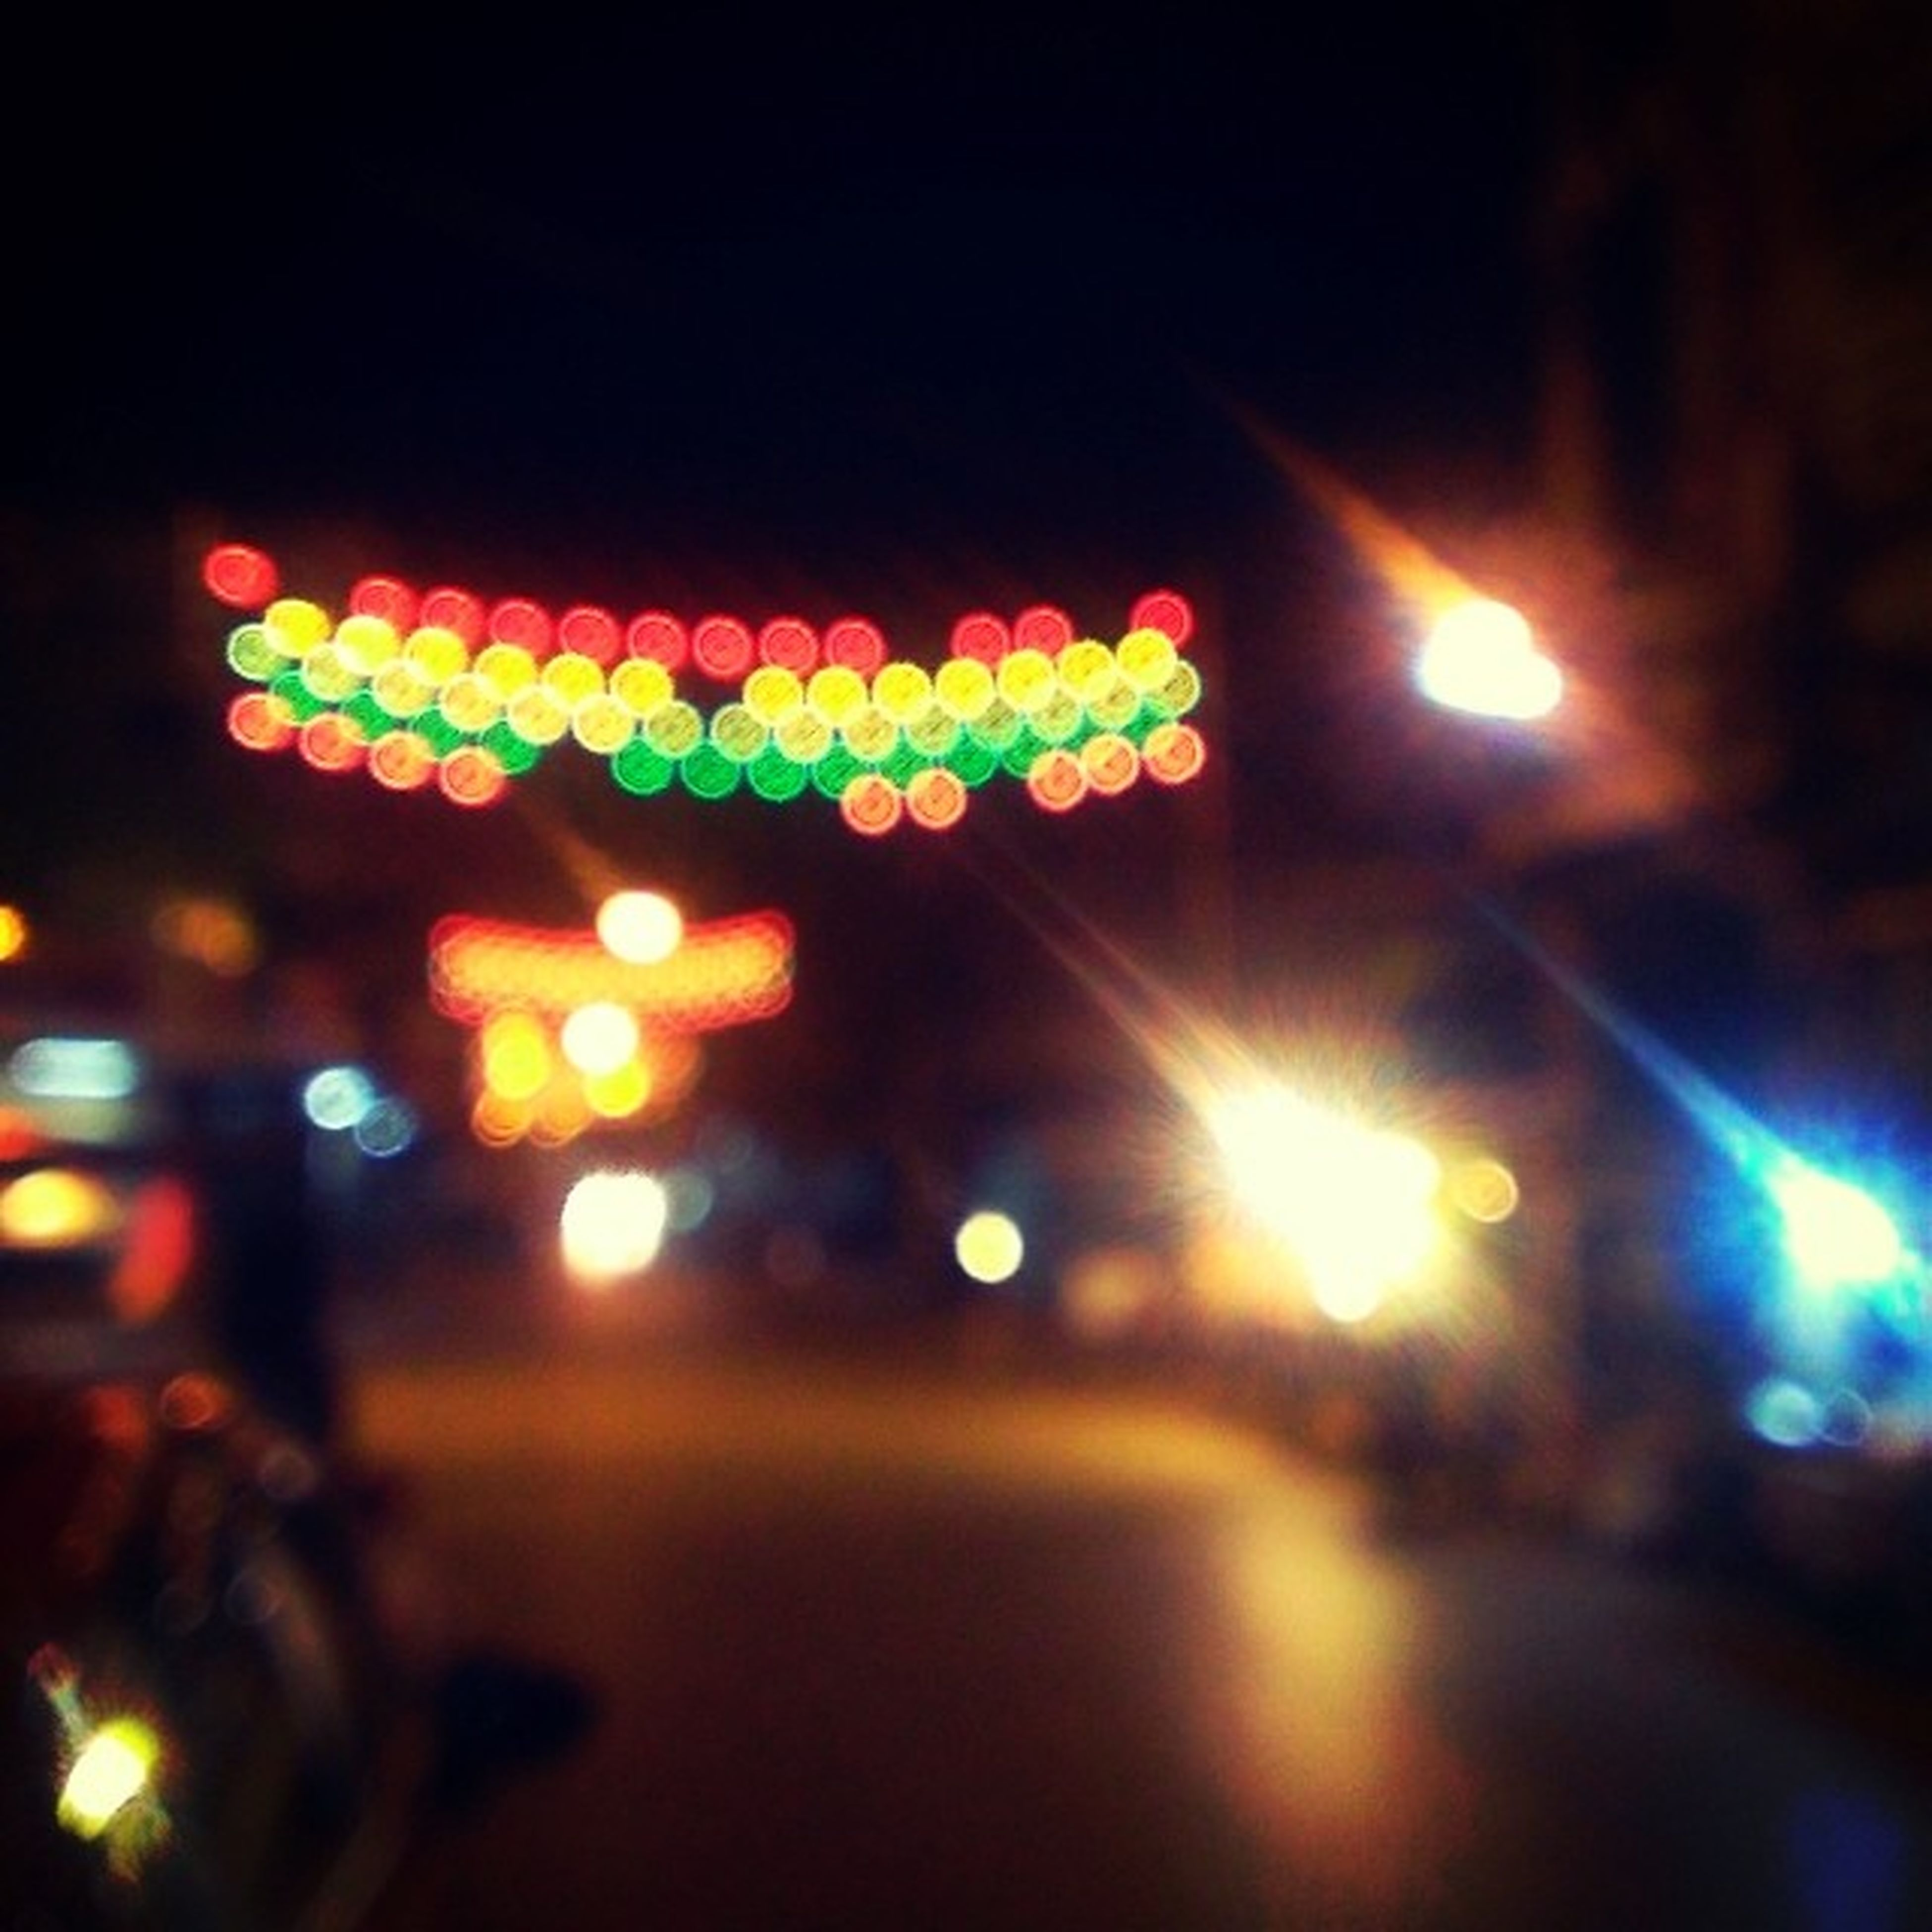 illuminated, night, defocused, multi colored, lighting equipment, lens flare, light - natural phenomenon, glowing, decoration, street, celebration, no people, outdoors, colorful, reflection, street light, light, focus on foreground, city, sky